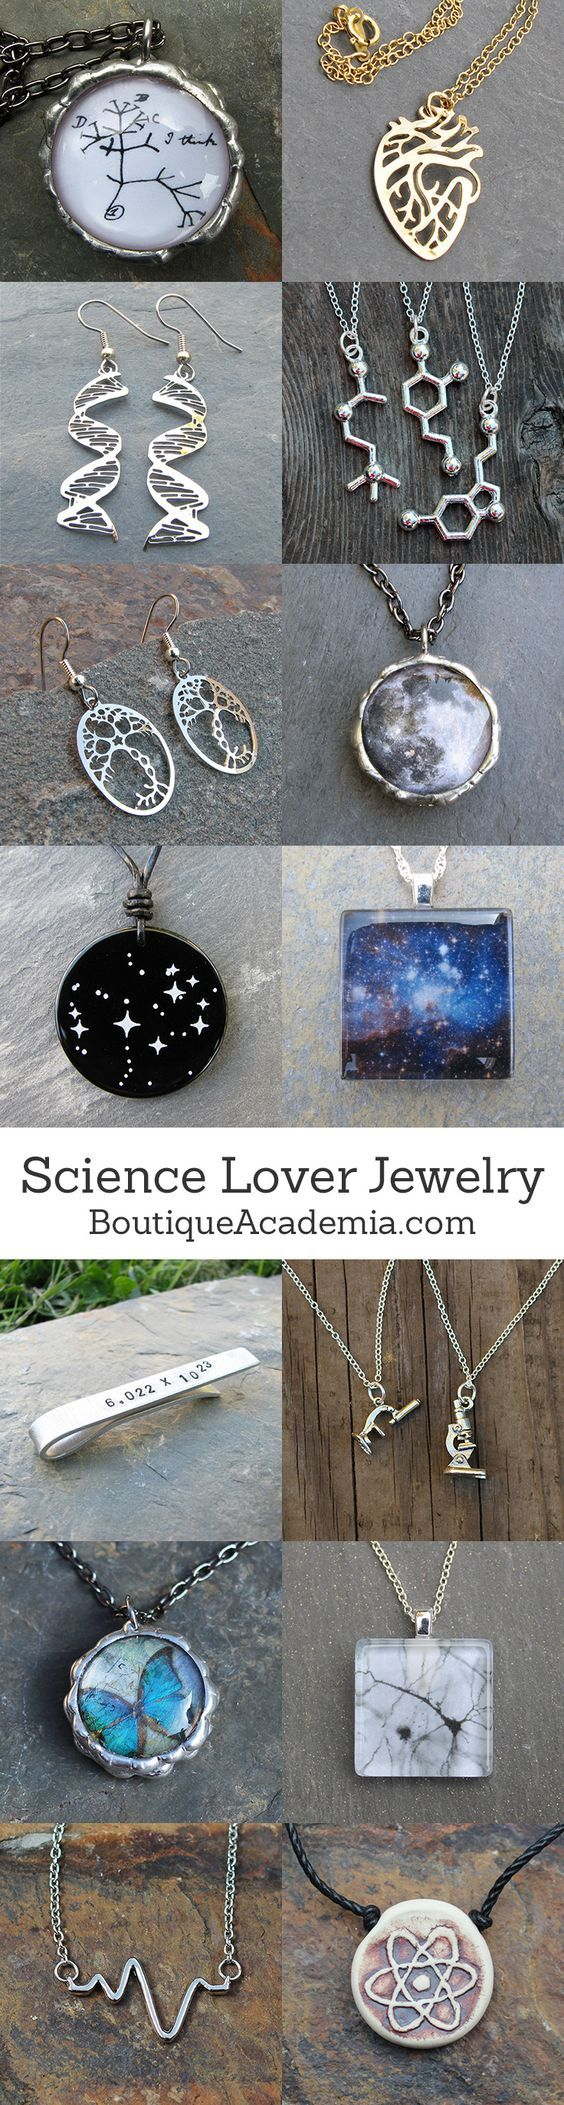 Jewelry for science lovers. Perfect for science teachers, students, researchers, and science enthusiasts.